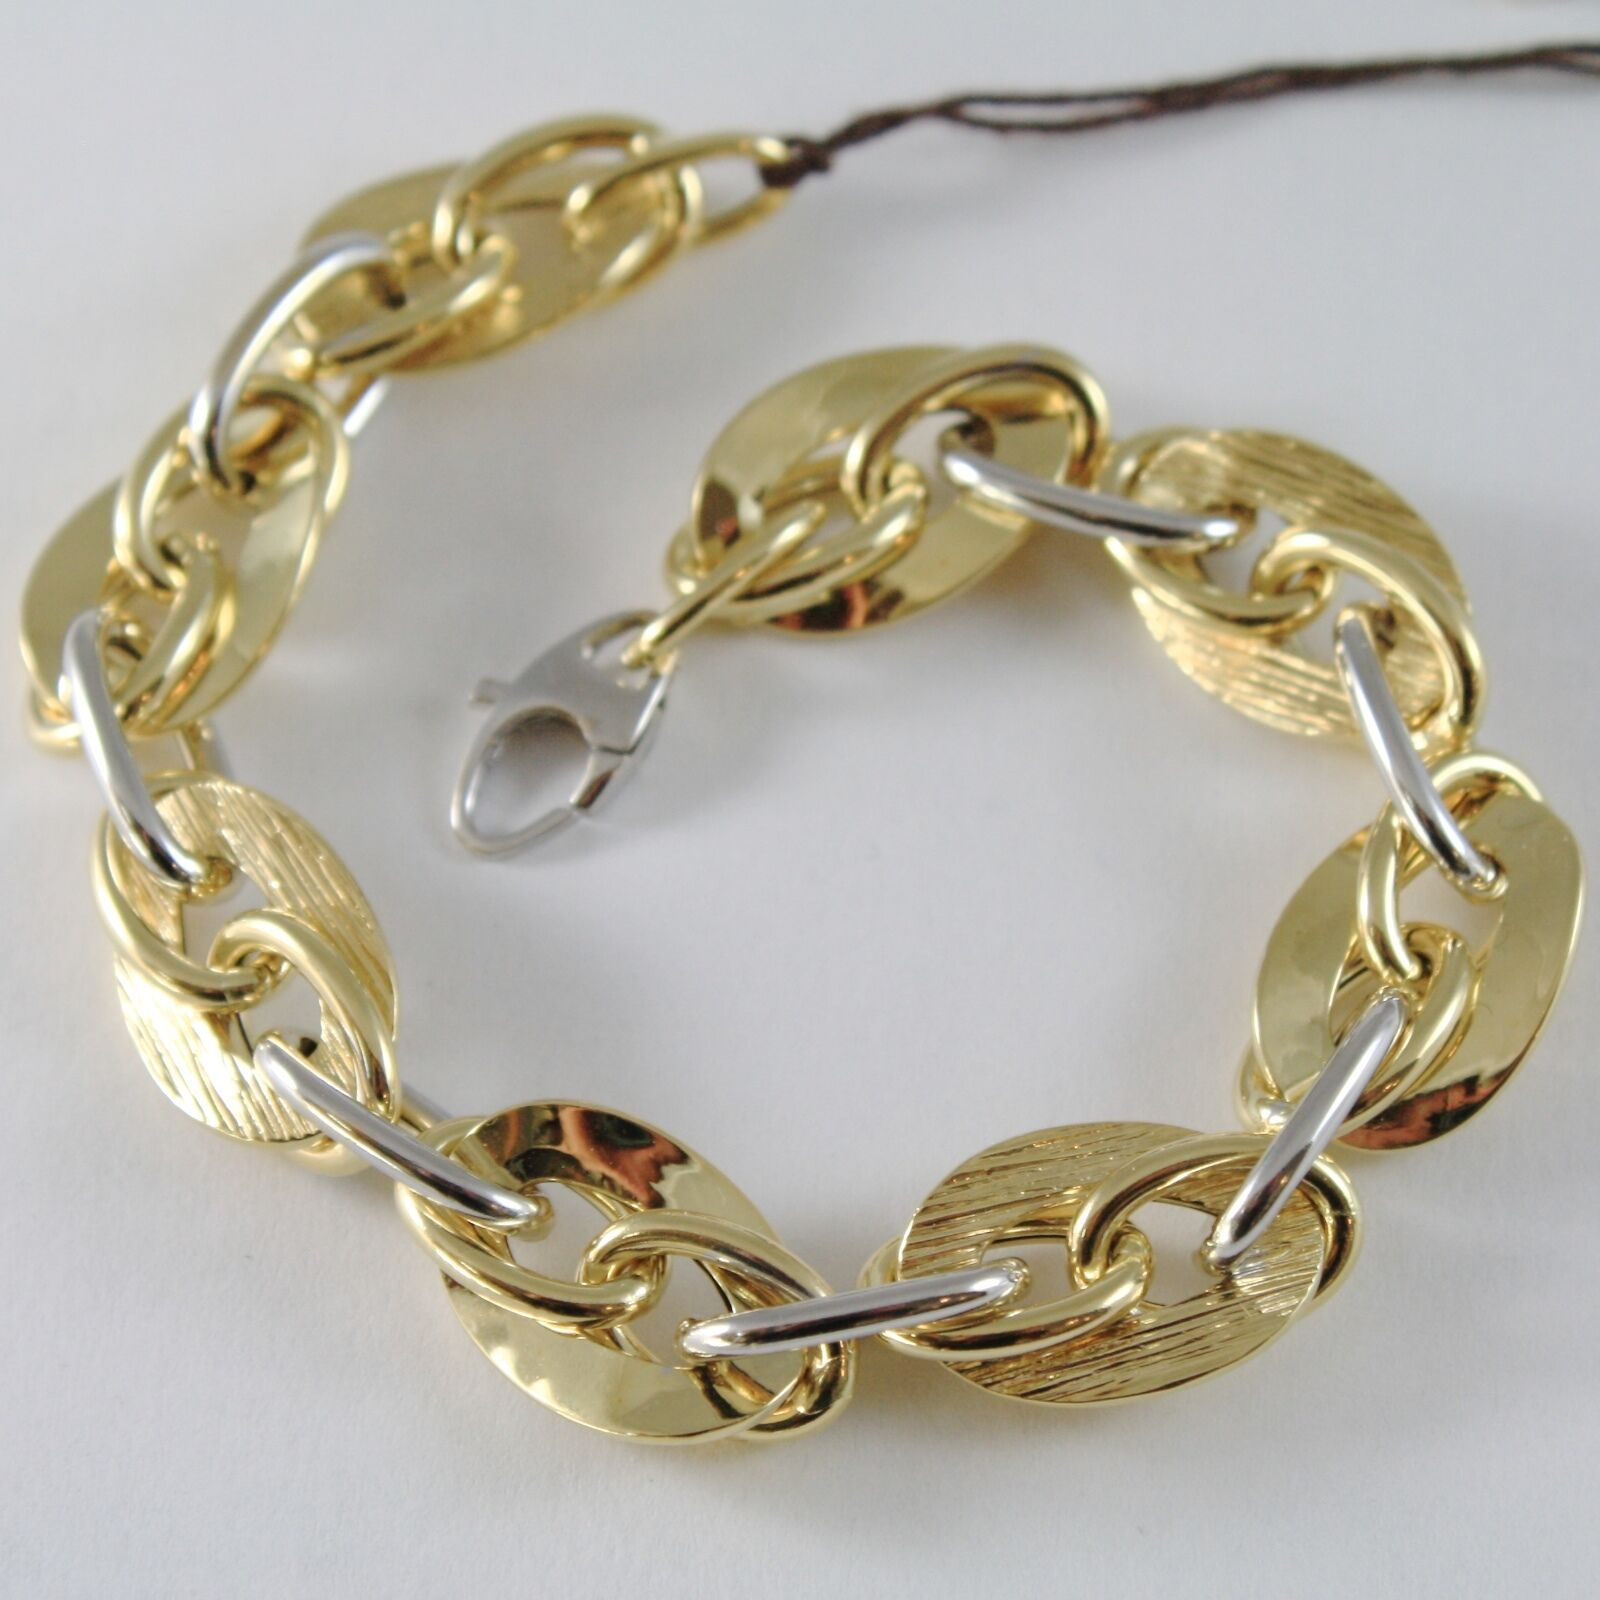 Bracelet Yellow Gold White 750 18K with Ovals Rigati and Alternating, 20.5 CM